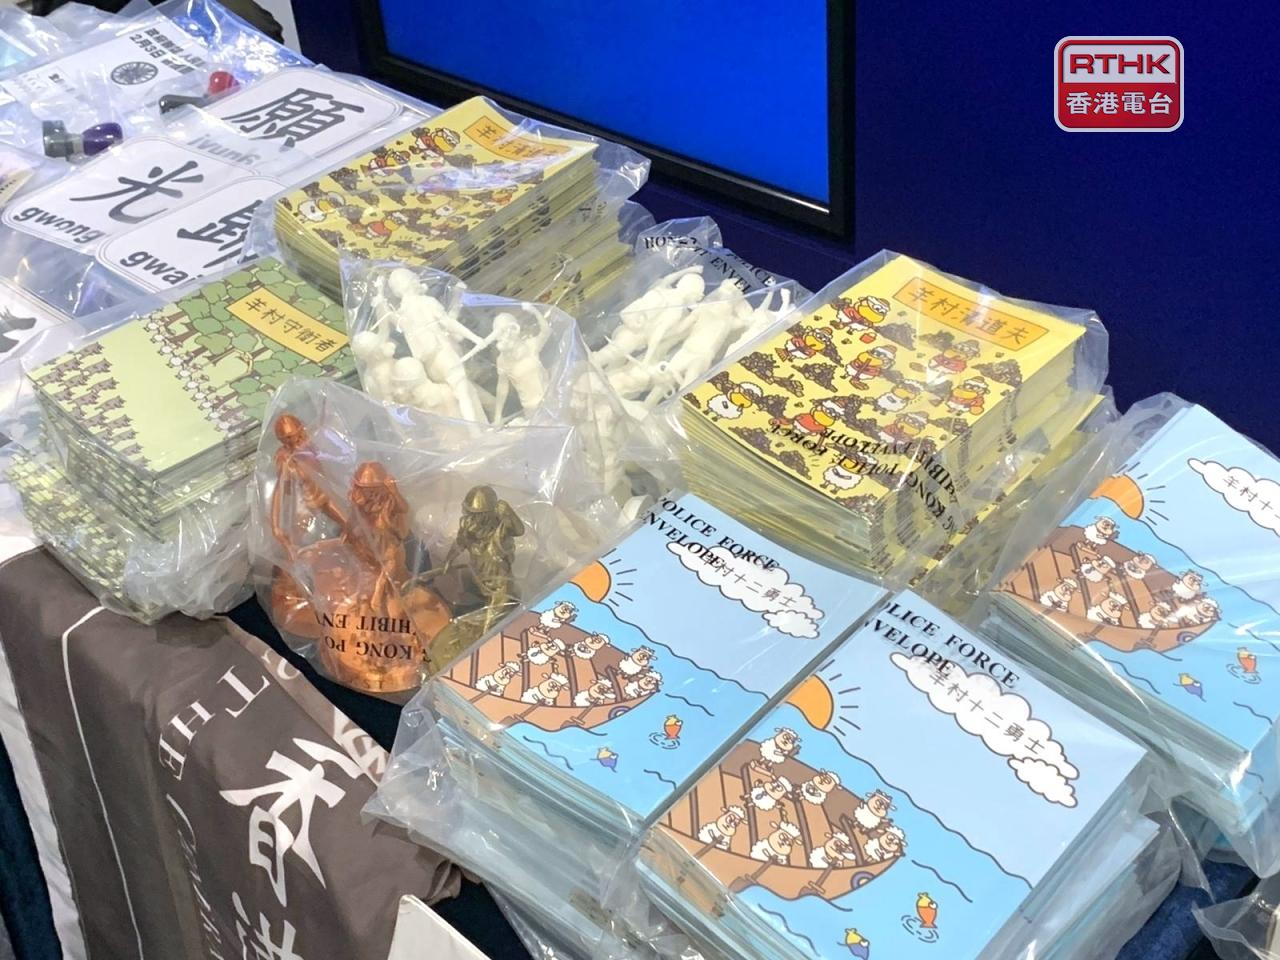 The police have alleged that the books featuring sheep are capable of inciting hatred towards the government. File photo: RTHK